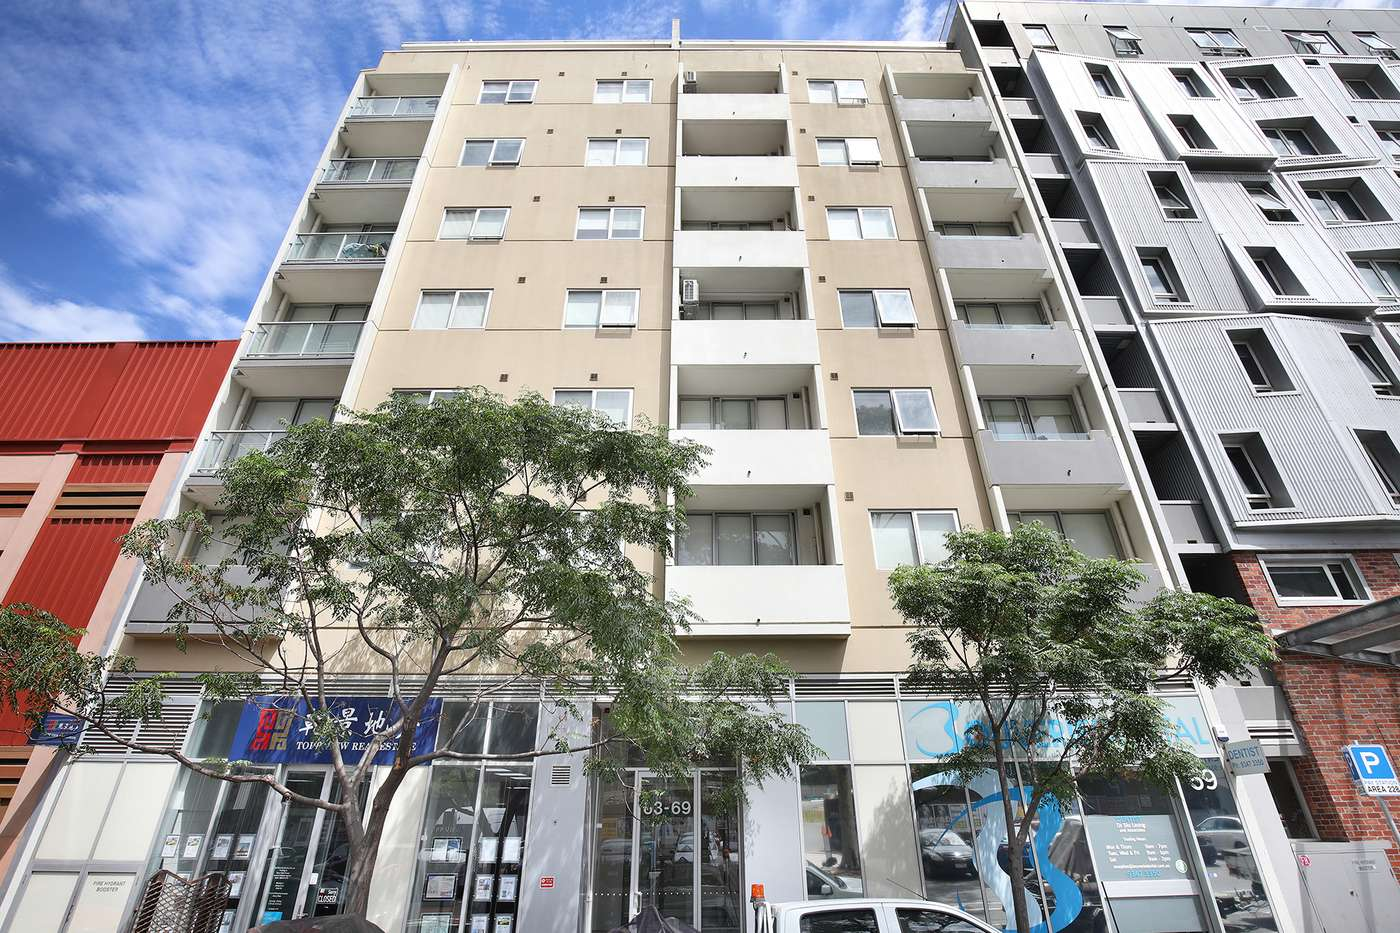 Main view of Homely apartment listing, 506/63-65 Bouverie St, Carlton, VIC 3053